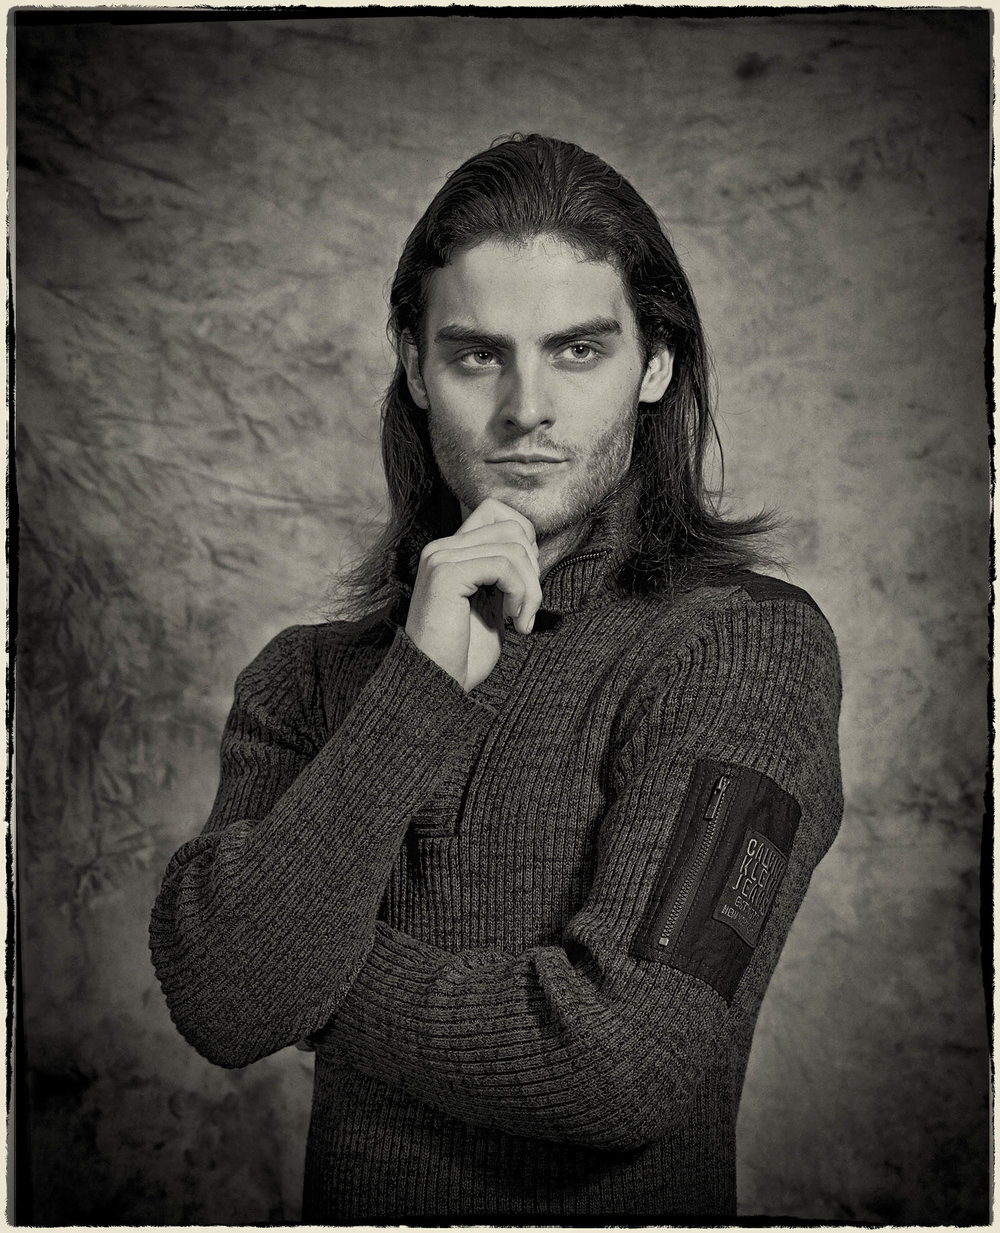 Classic Headshot of male model, taken with 4x5 film camera.